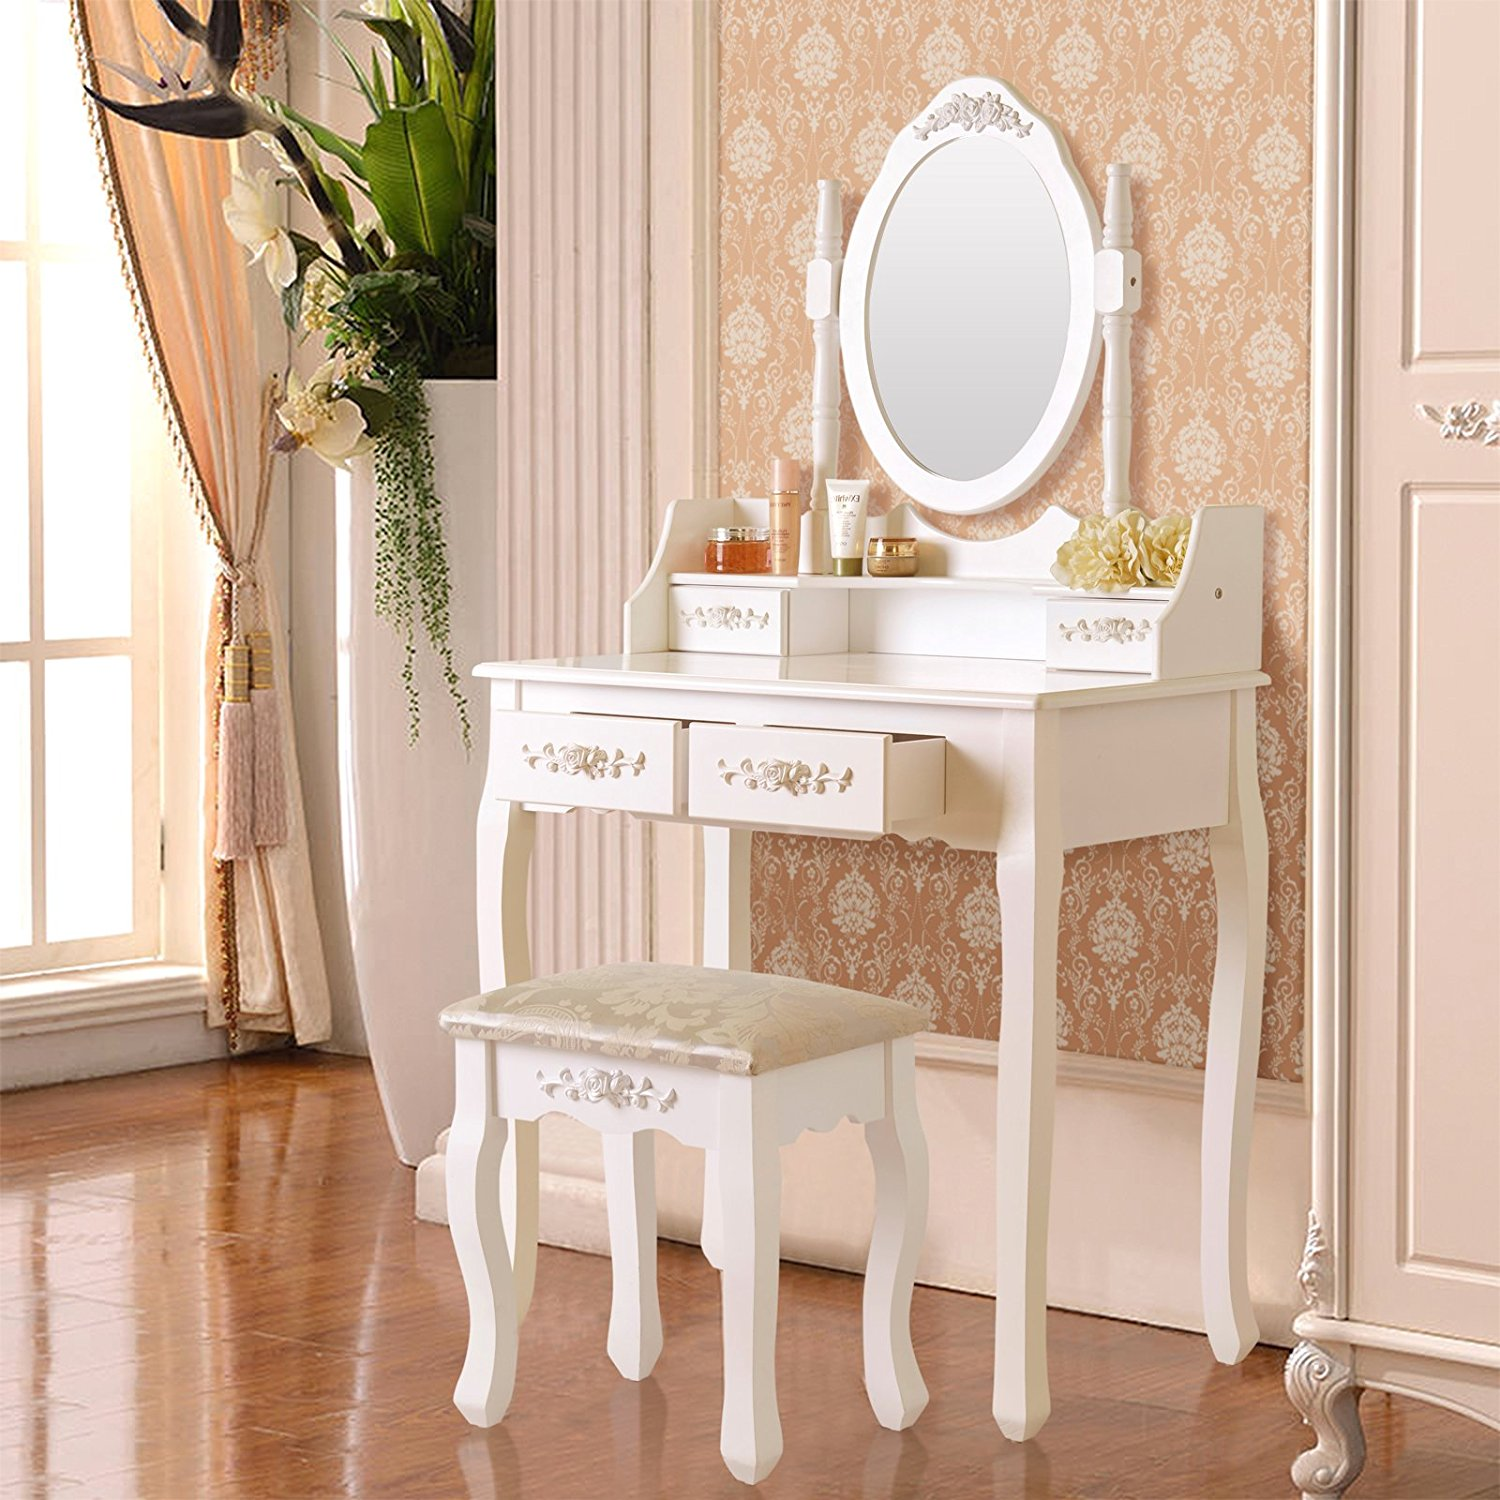 mirror jewelry dressingtablevanity pin dresser vanity corner with dressing furniture white table